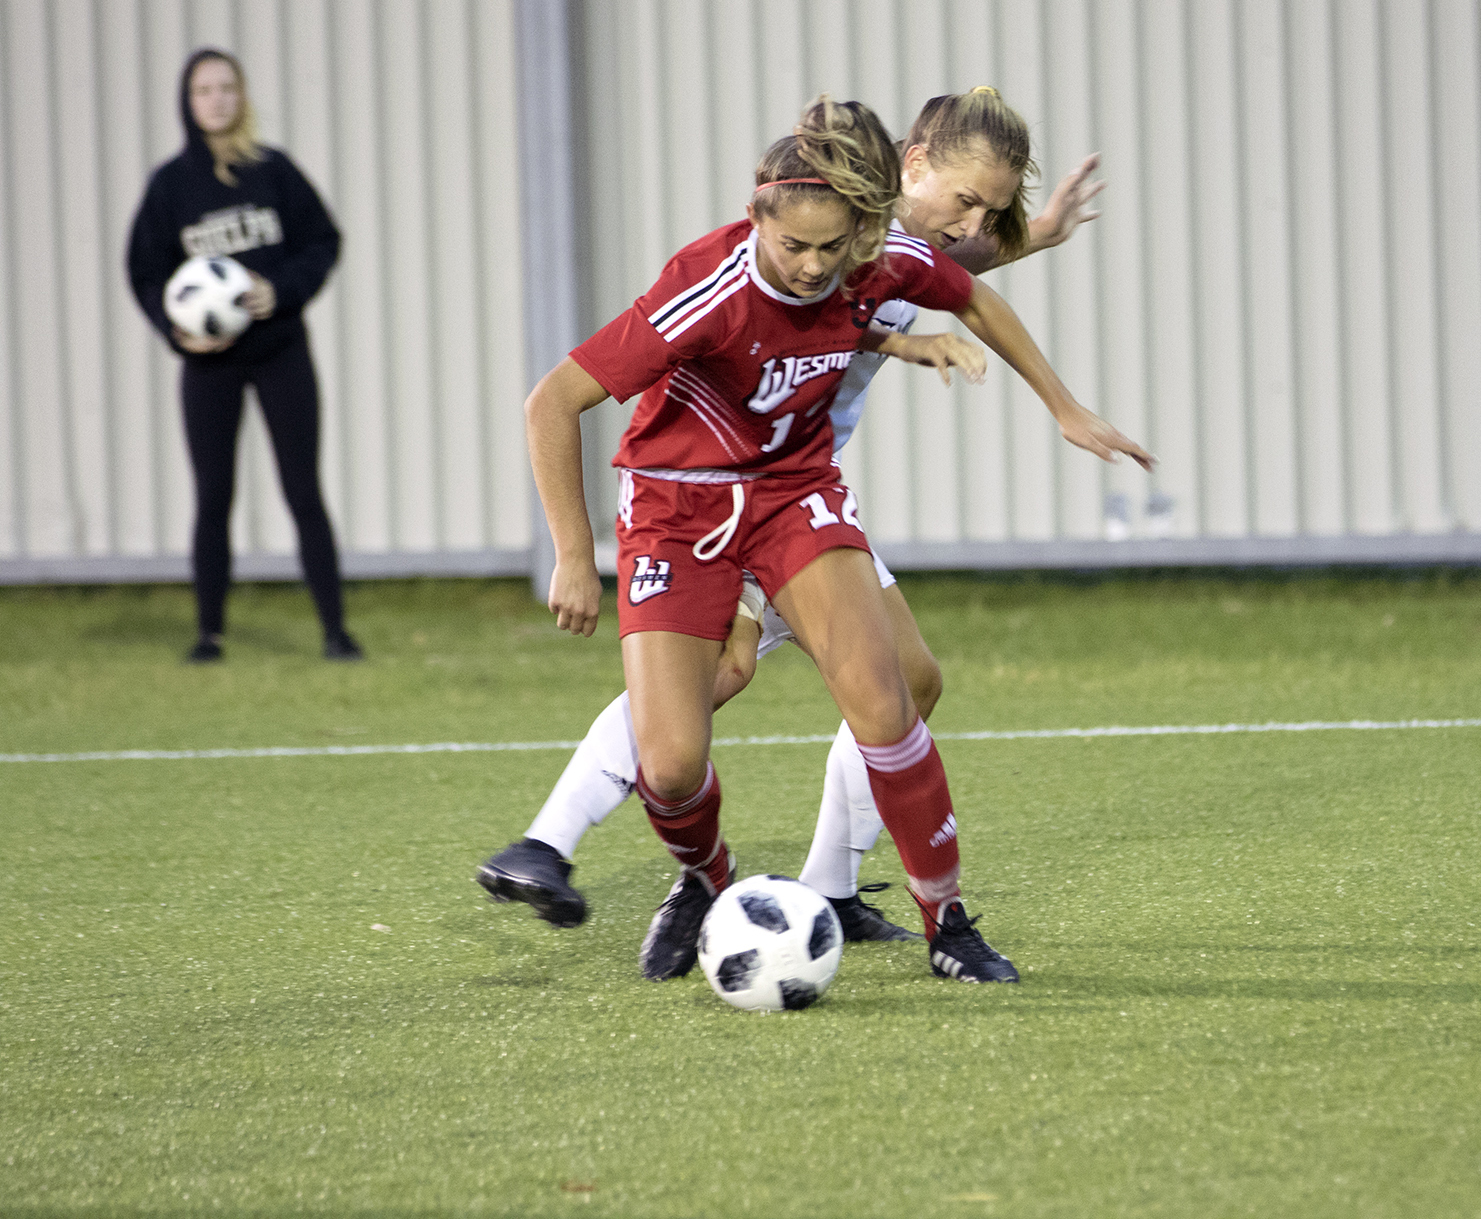 Wesmen forward Shae-Lynn Dodds fights off a Trinity Western opponent during a 3-0 loss Saturday night. (David Larkins/Wesmen Athletics)